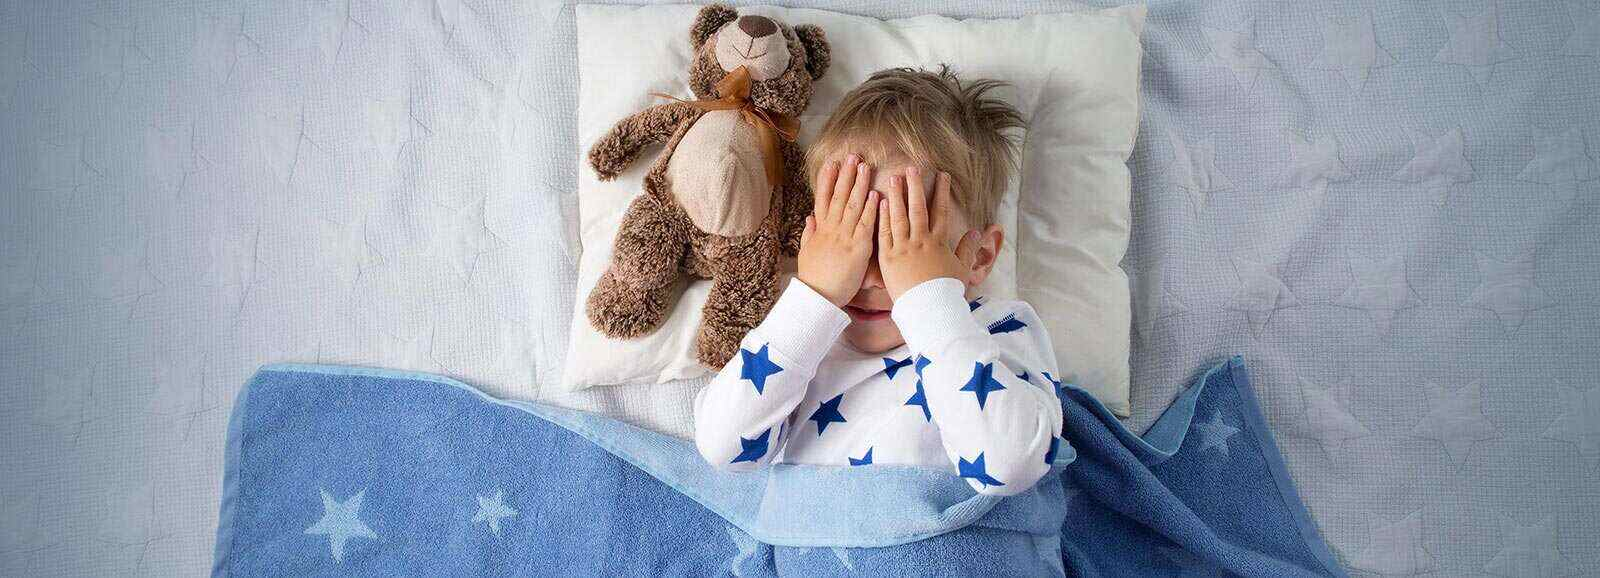 little boy in bed with a teddy bear